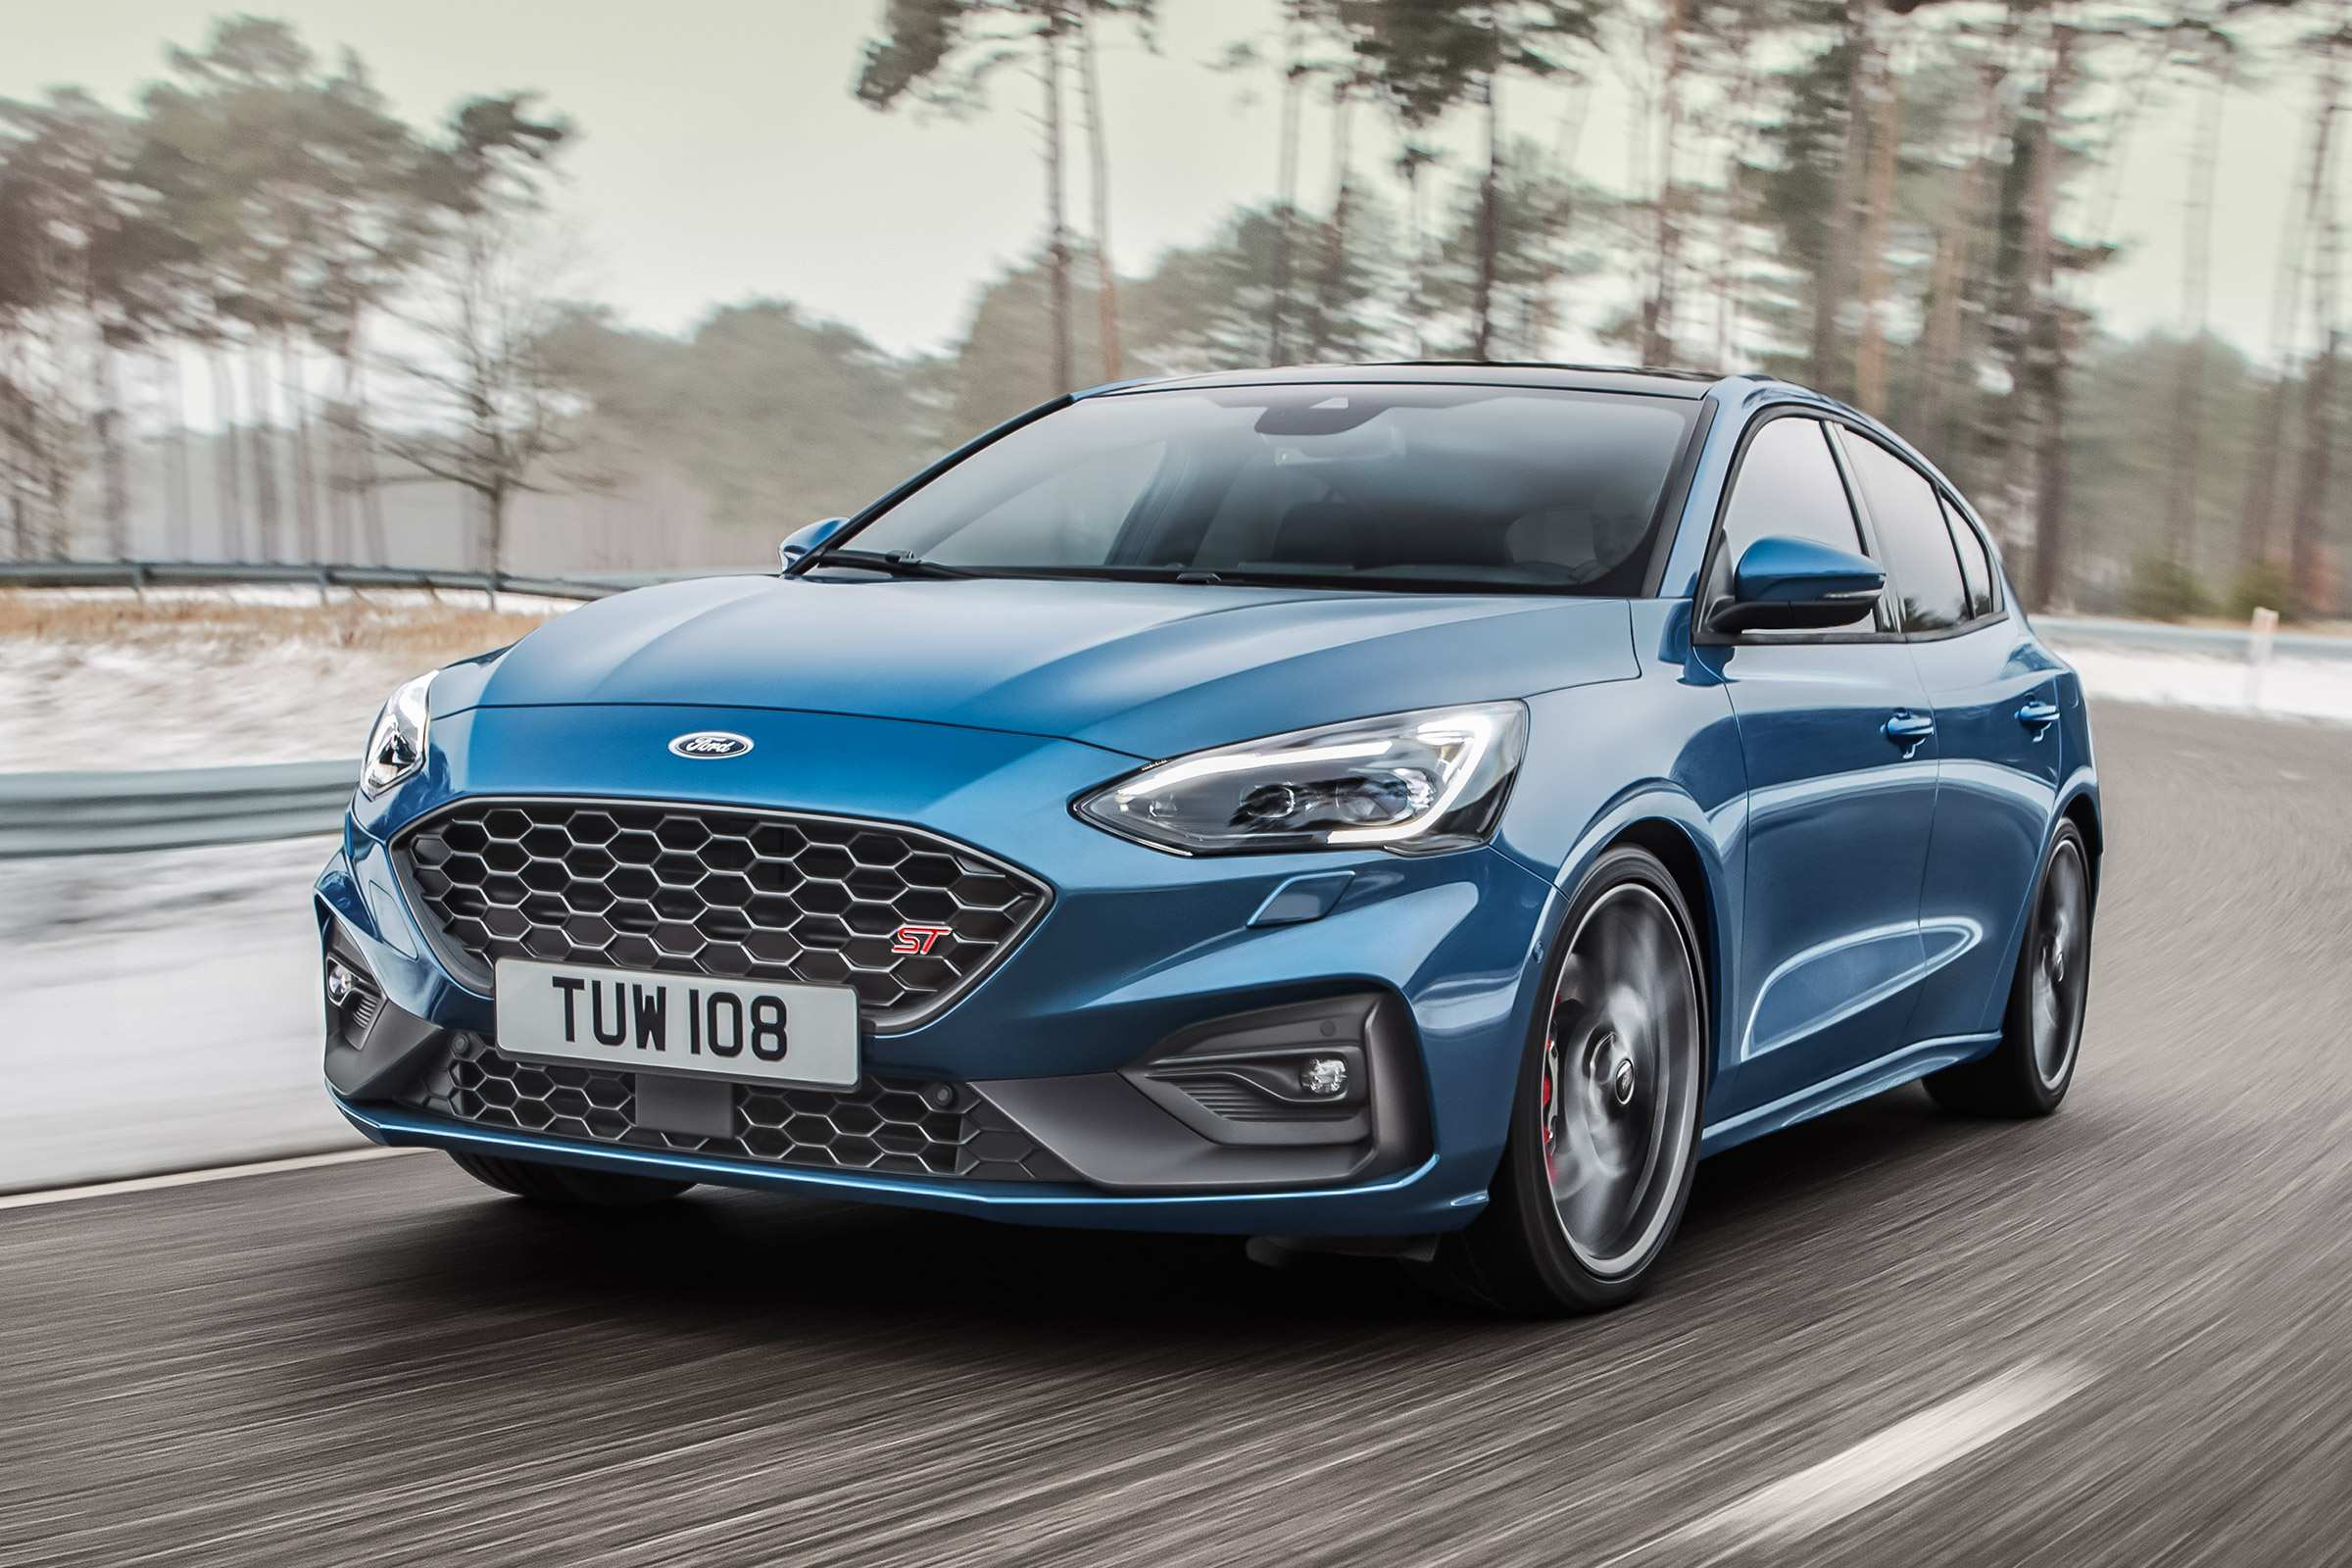 68 All New 2019 Ford Focus Rs St Rumors